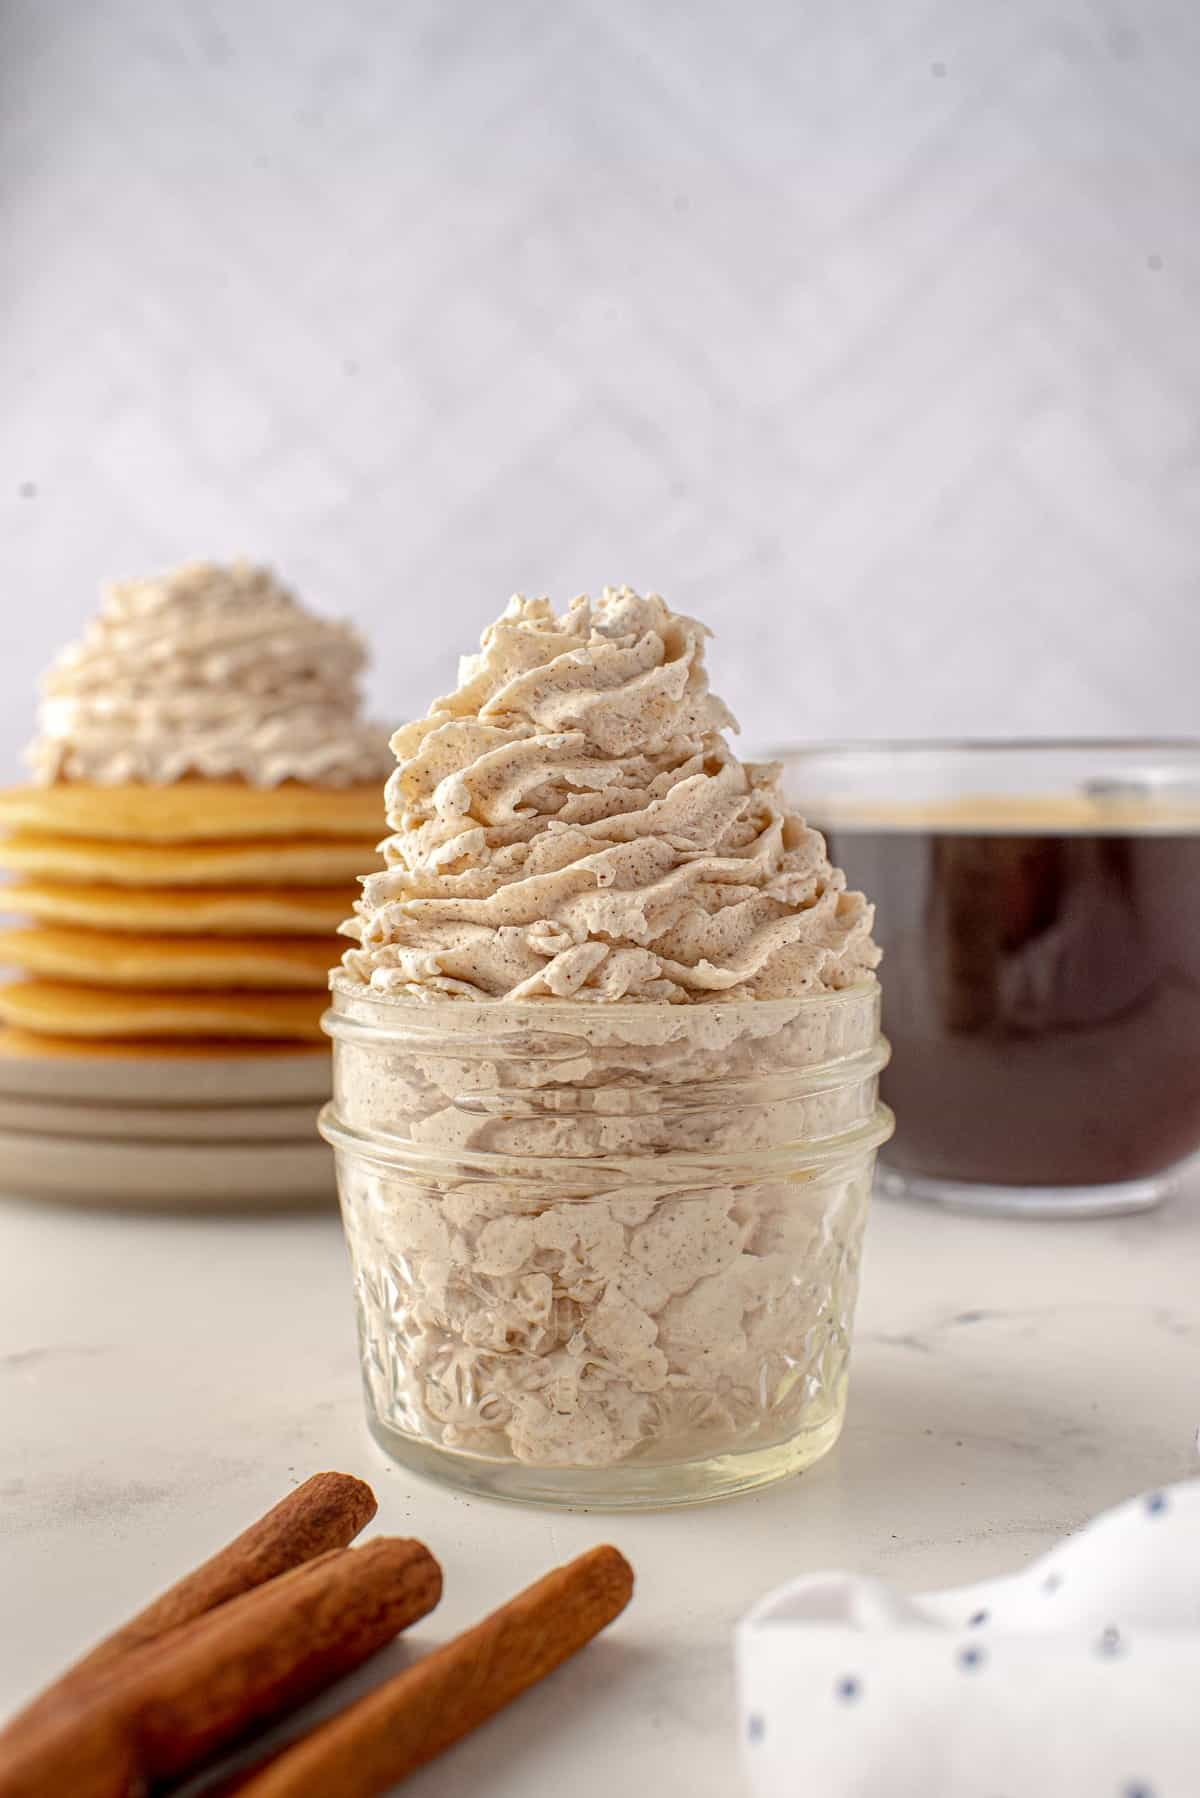 Cinnamon whipped cream piped into a jar, cinnamon sticks in foreground, pancakes in background.